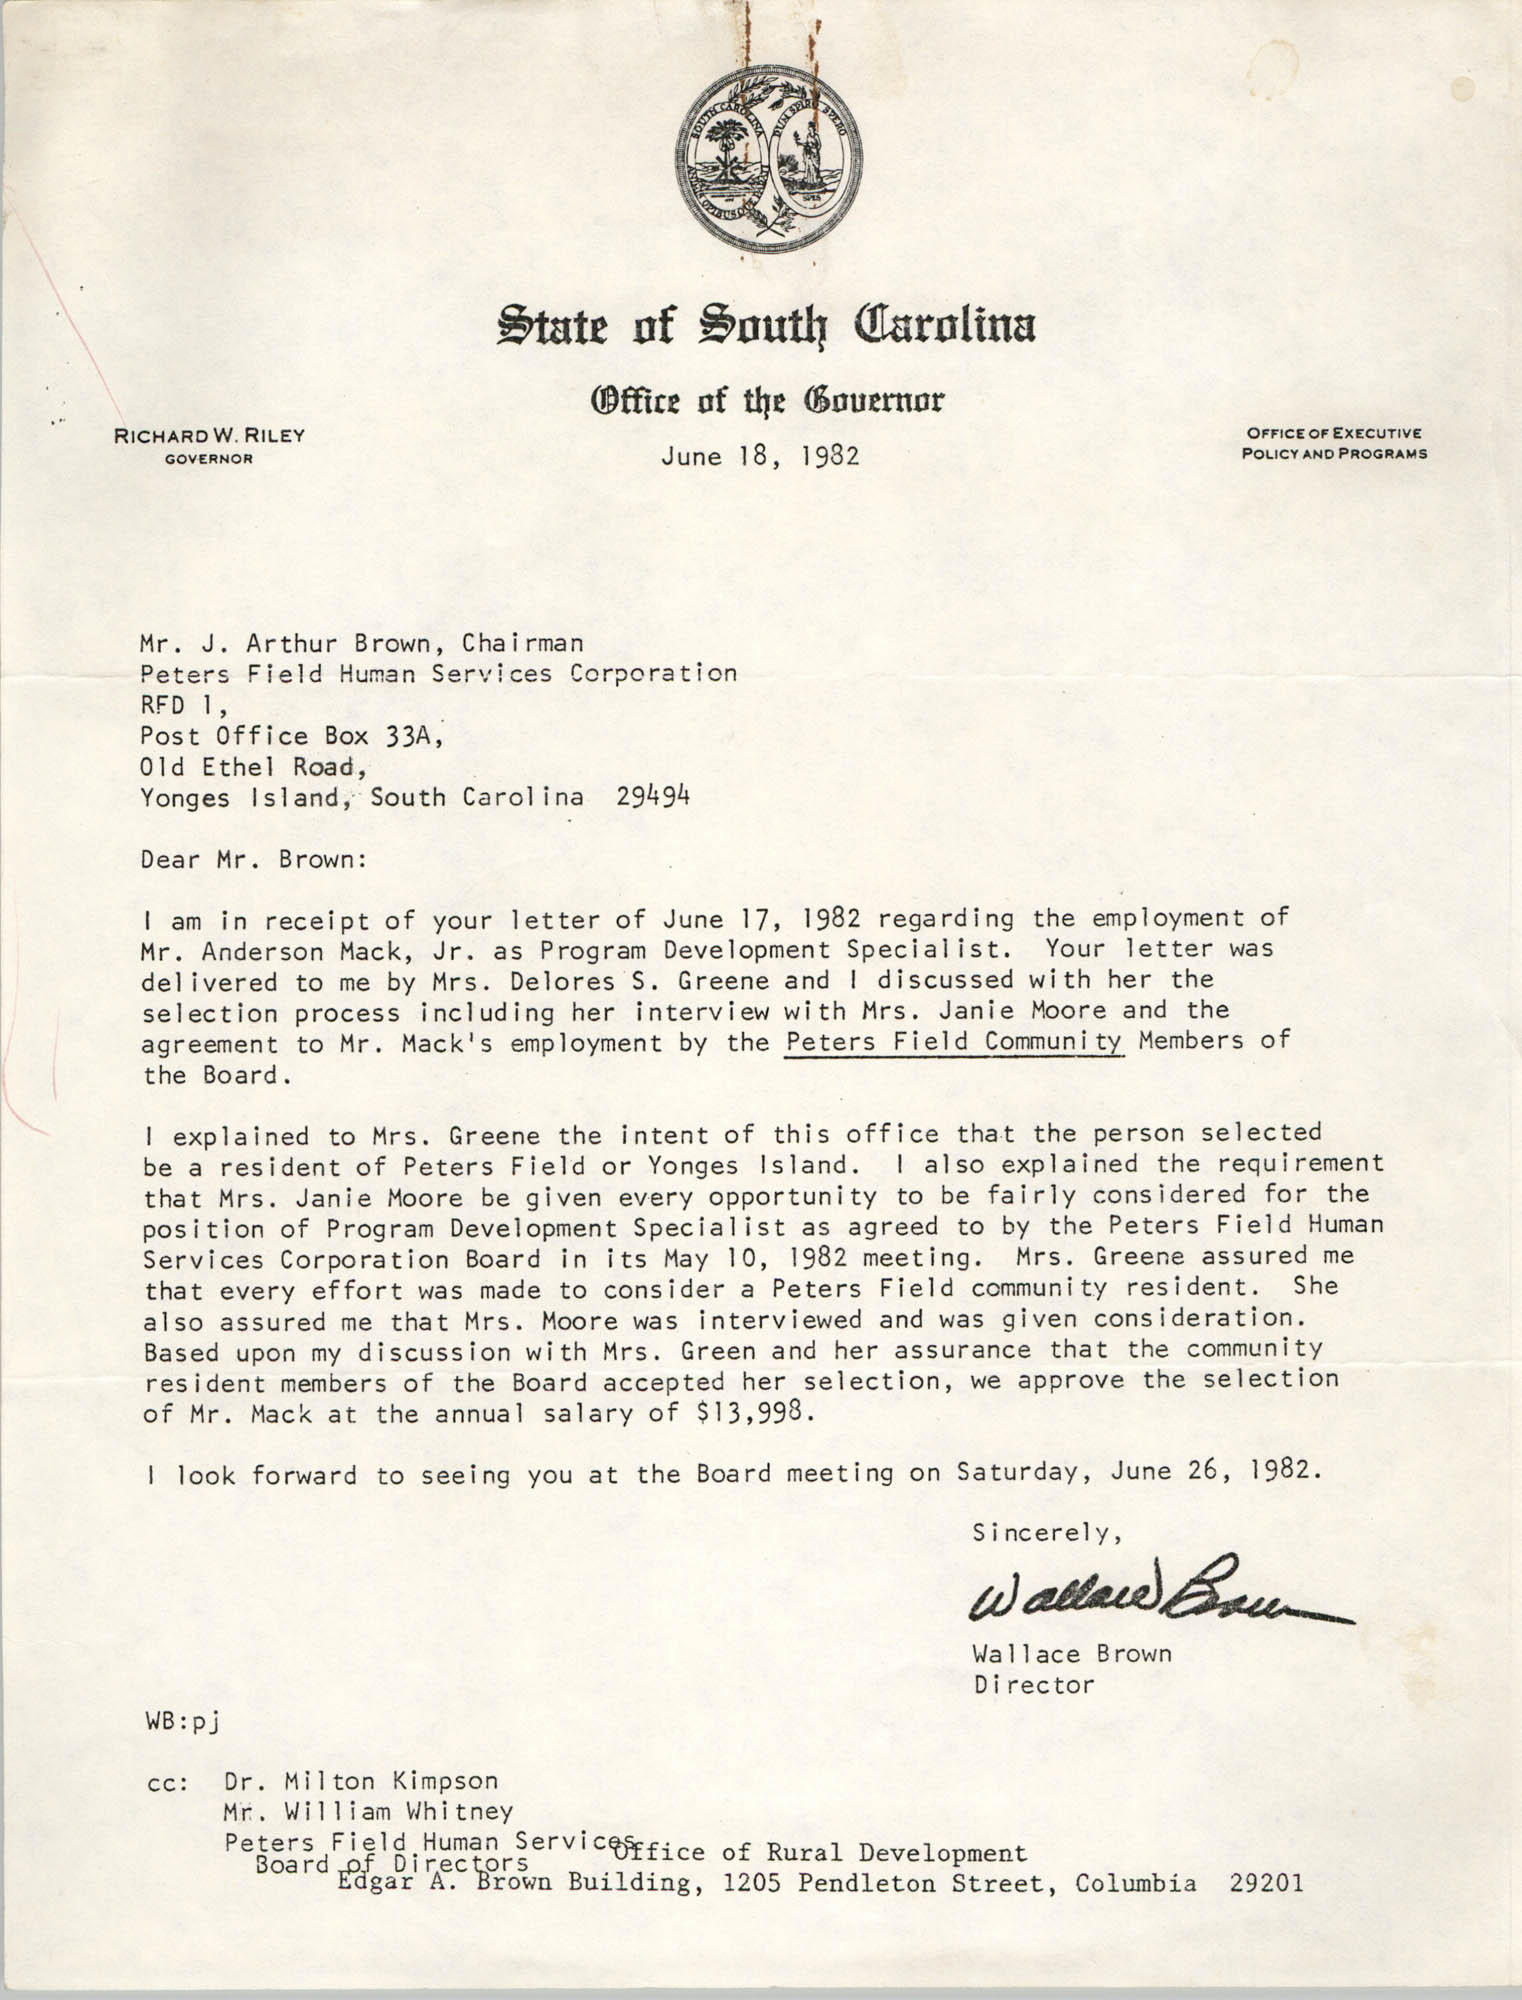 Letter from Wallace Brown to J. Arthur Brown, June 18, 1982